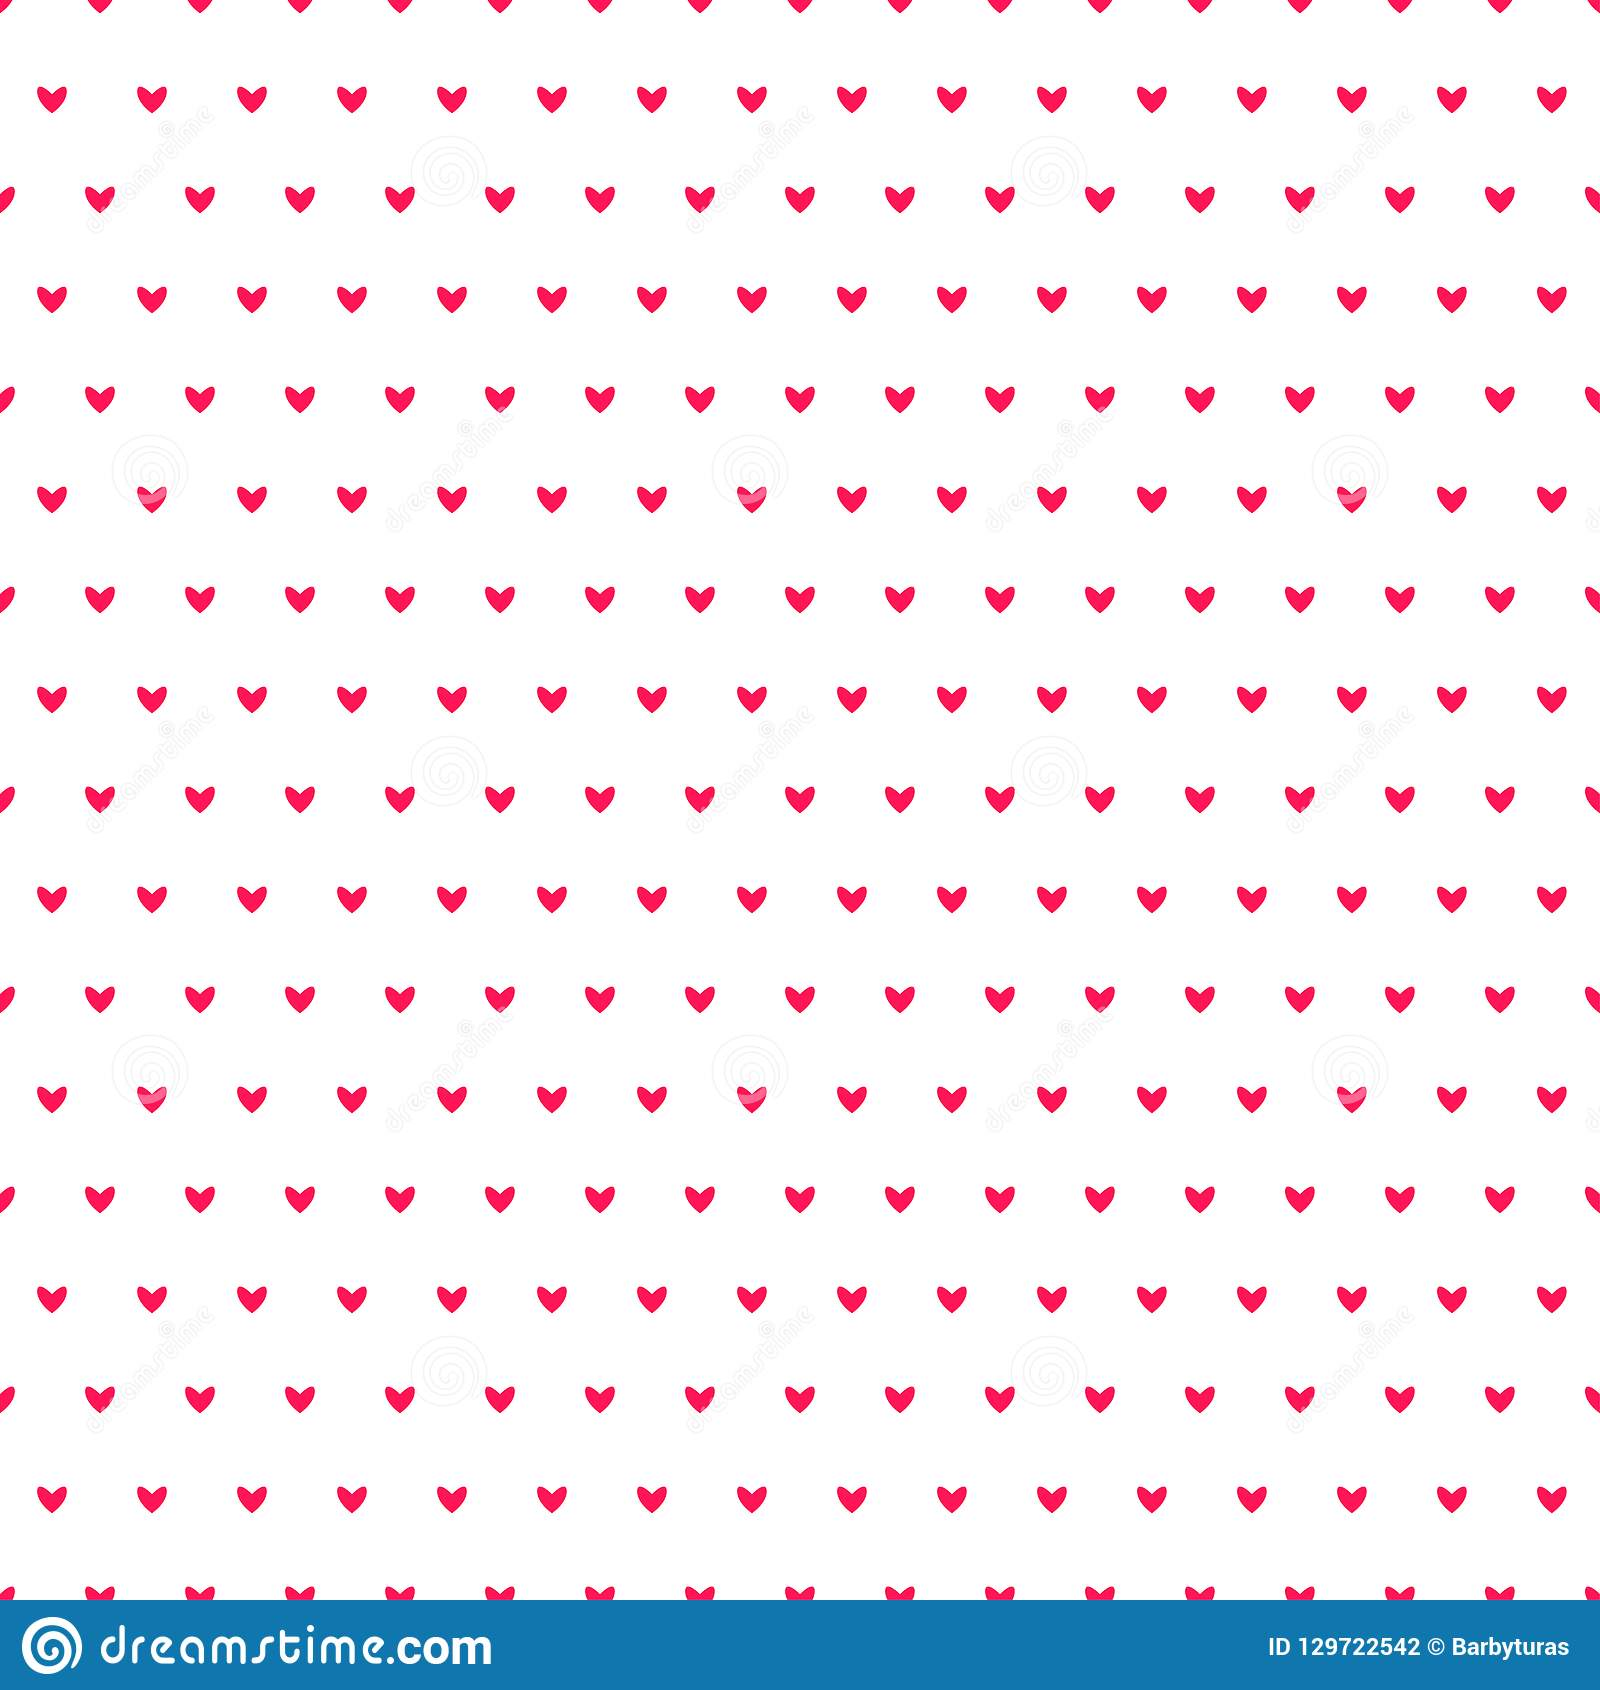 Simple hearts seamless vector pattern. Valentines day background. Flat design endless chaotic texture made of tiny heart silhouett